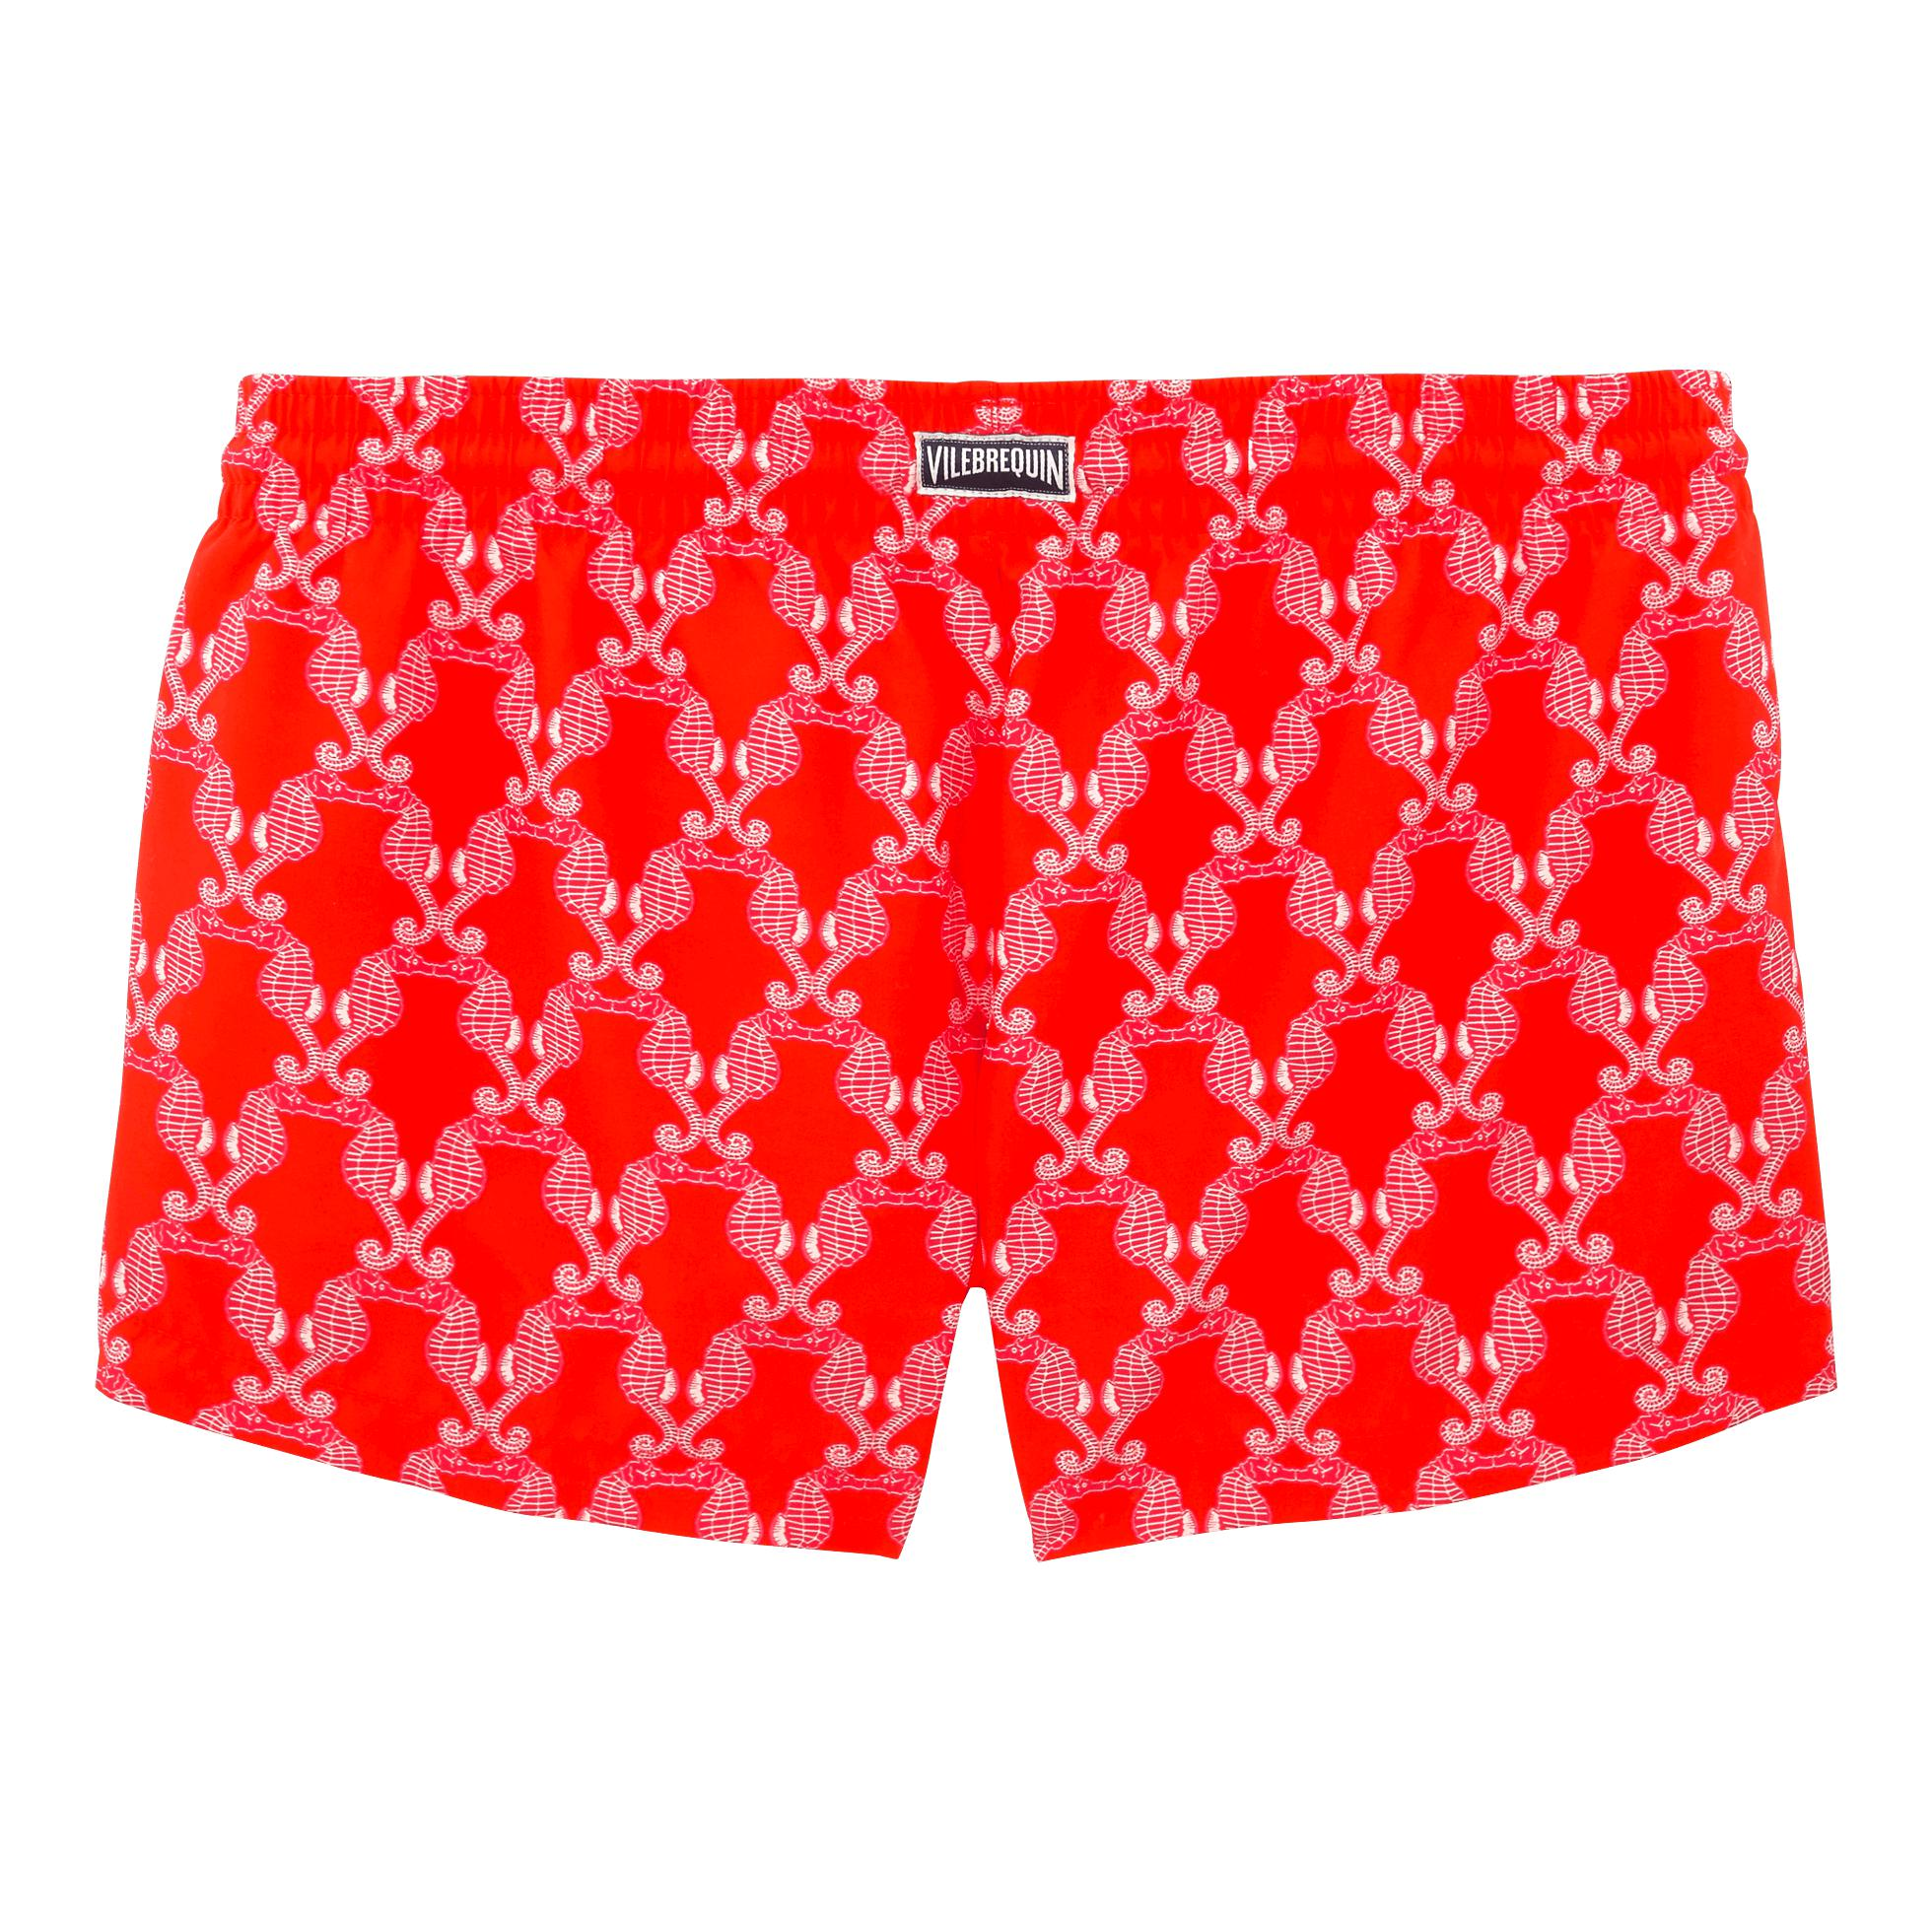 Lyst - Vilebrequin Valentine Day Hippocampes Straight Cut Shortie in Red b0d9db06a